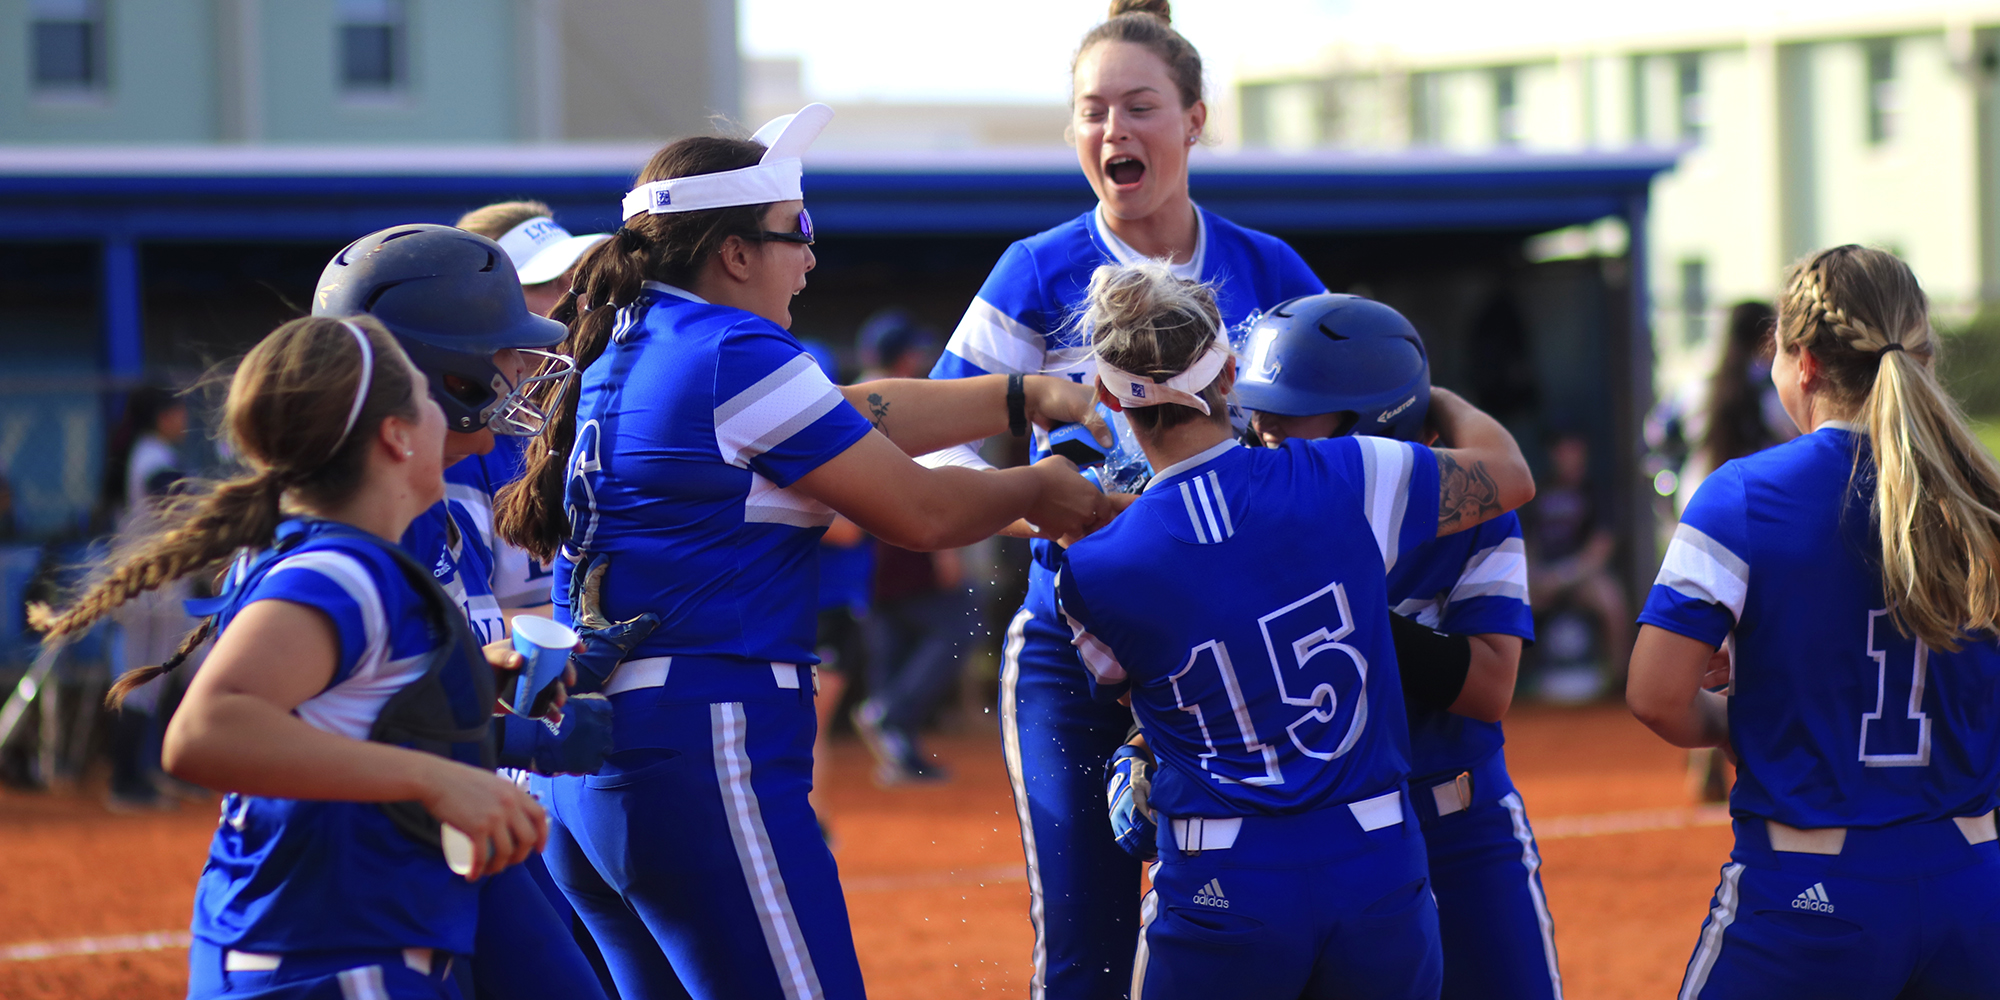 It's a Walk-Off; Wyatt & Veliz Give Softball Sweep of Bobcats